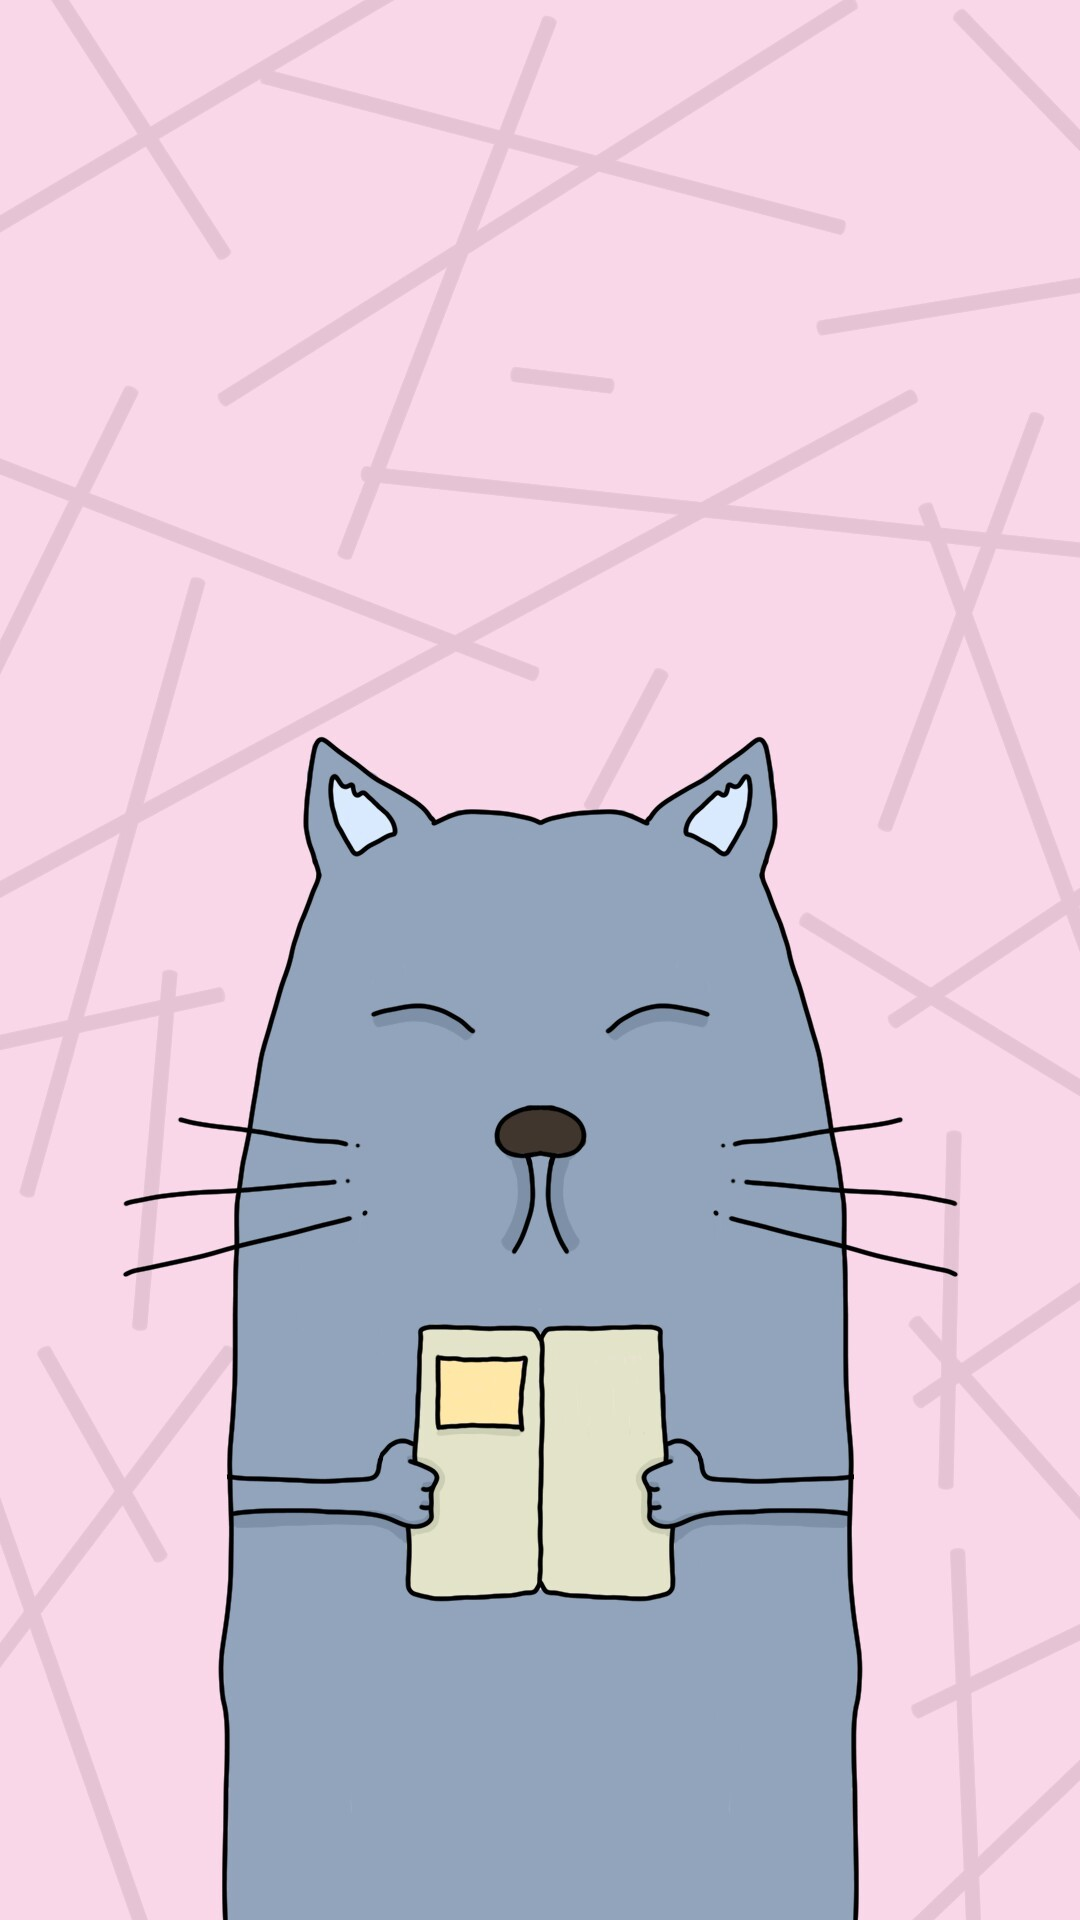 1080x1920 Smart cat #wallpaper #phone #iphone #vector #cartoon #drawing #grunge